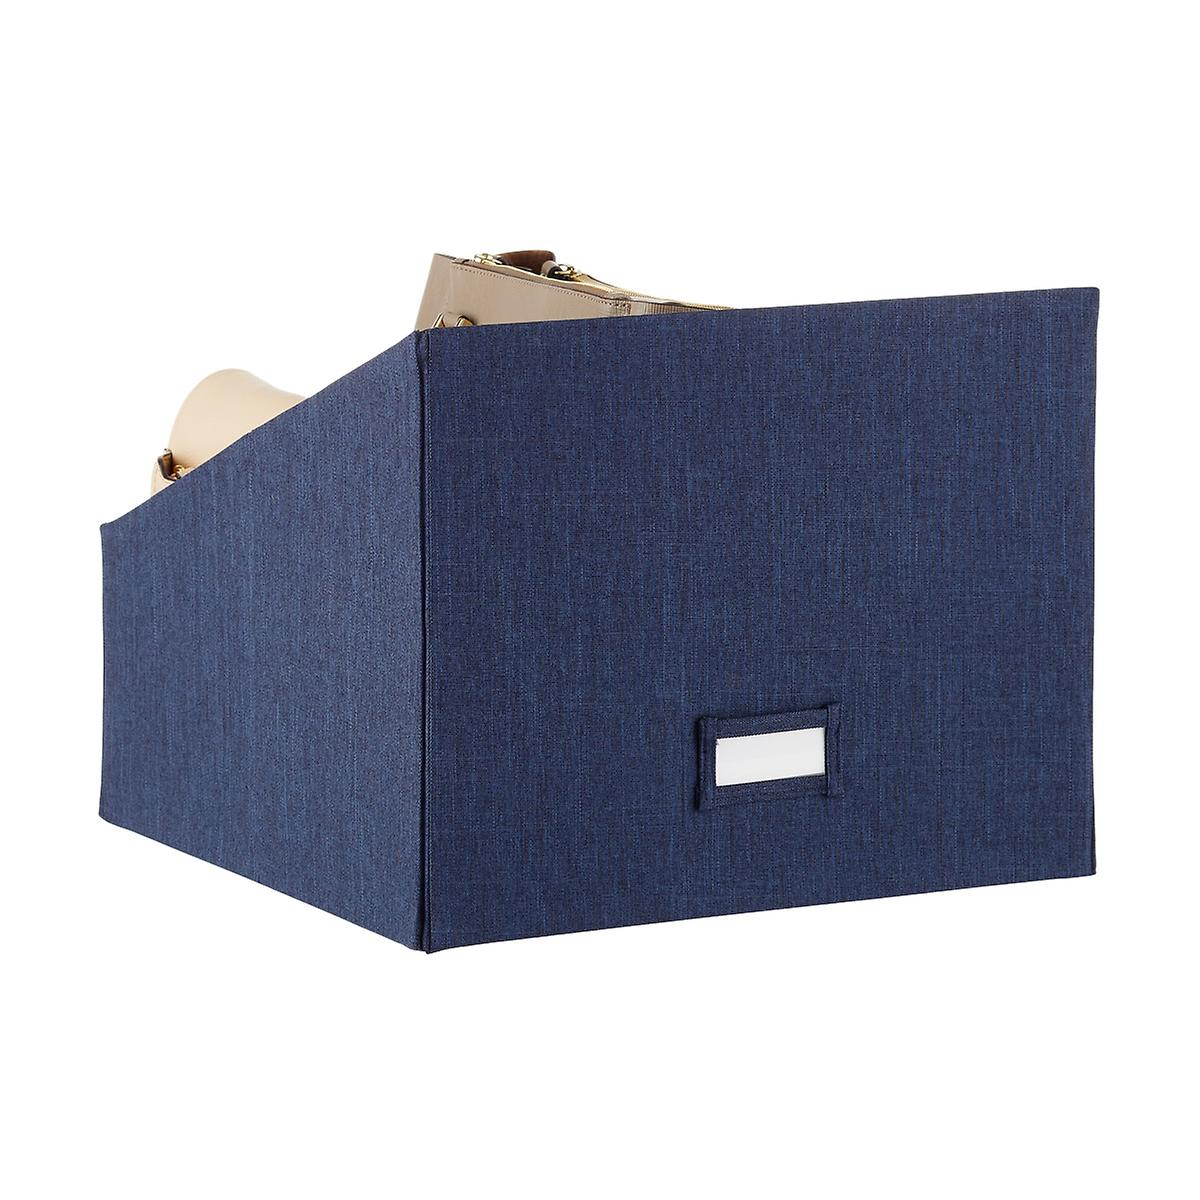 Navy Cambridge Purse Storage Bin